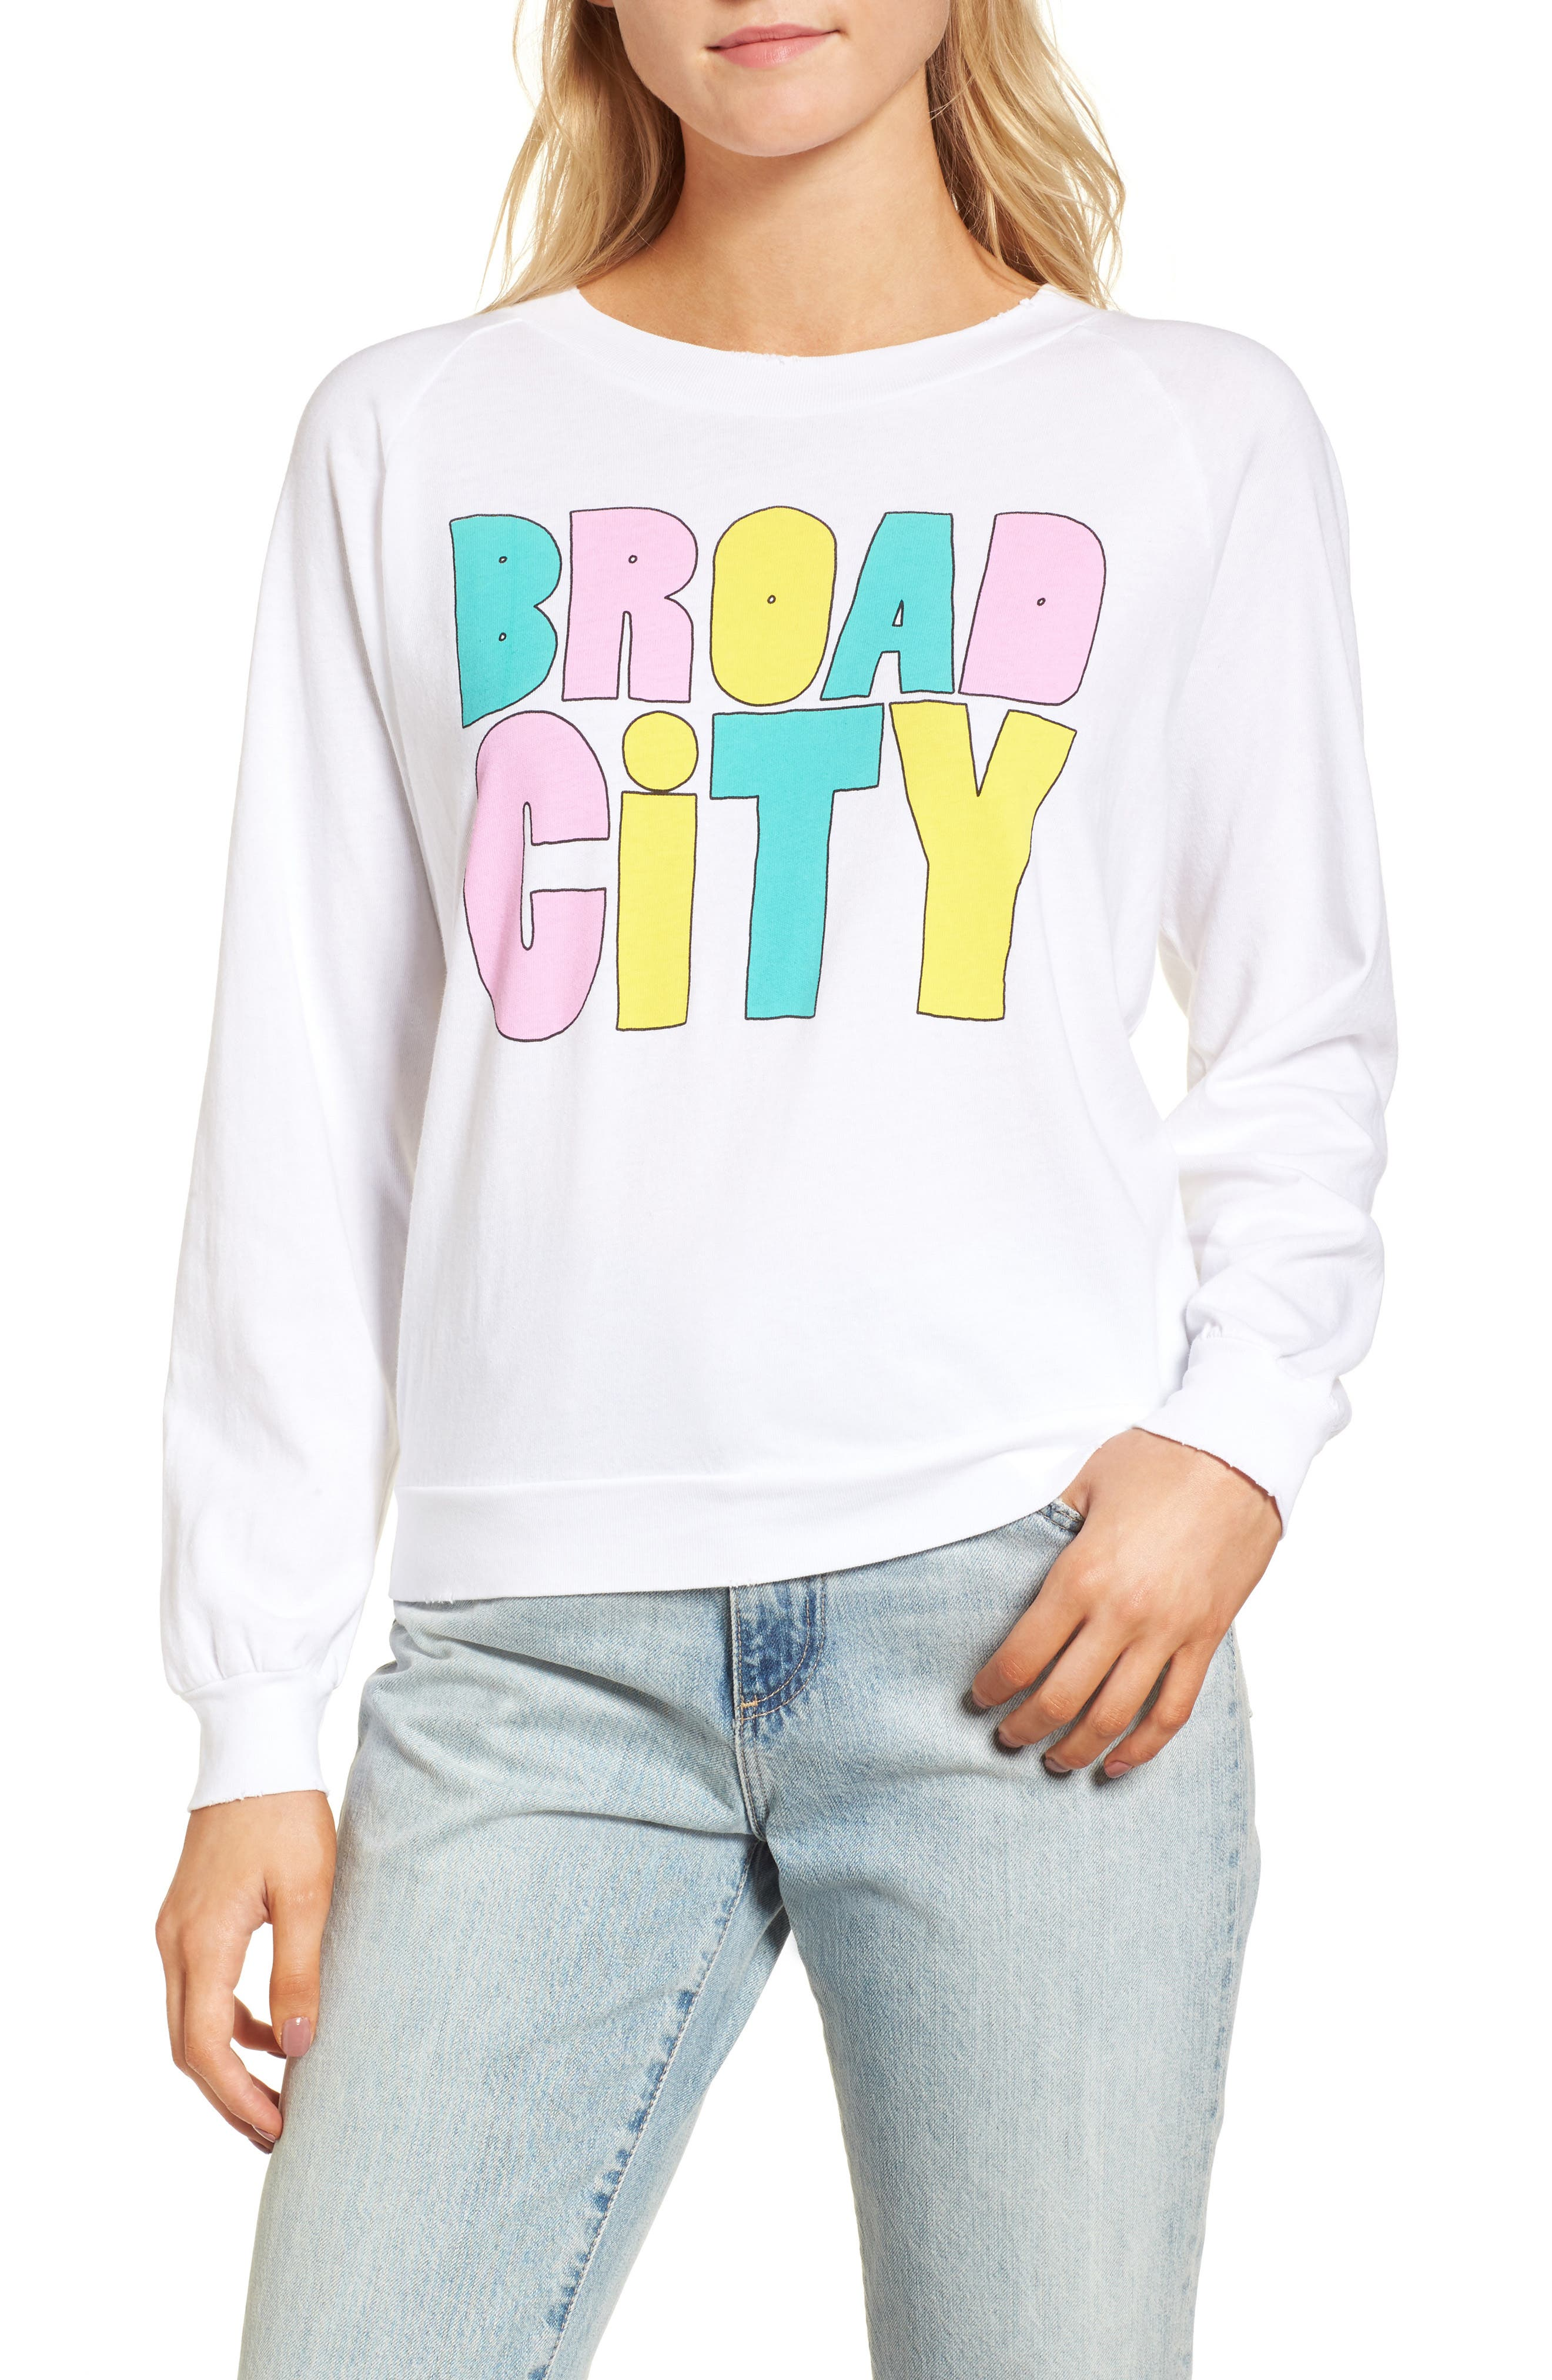 Broad City Cotton Graphic Sweatshirt,                         Main,                         color, Clean White